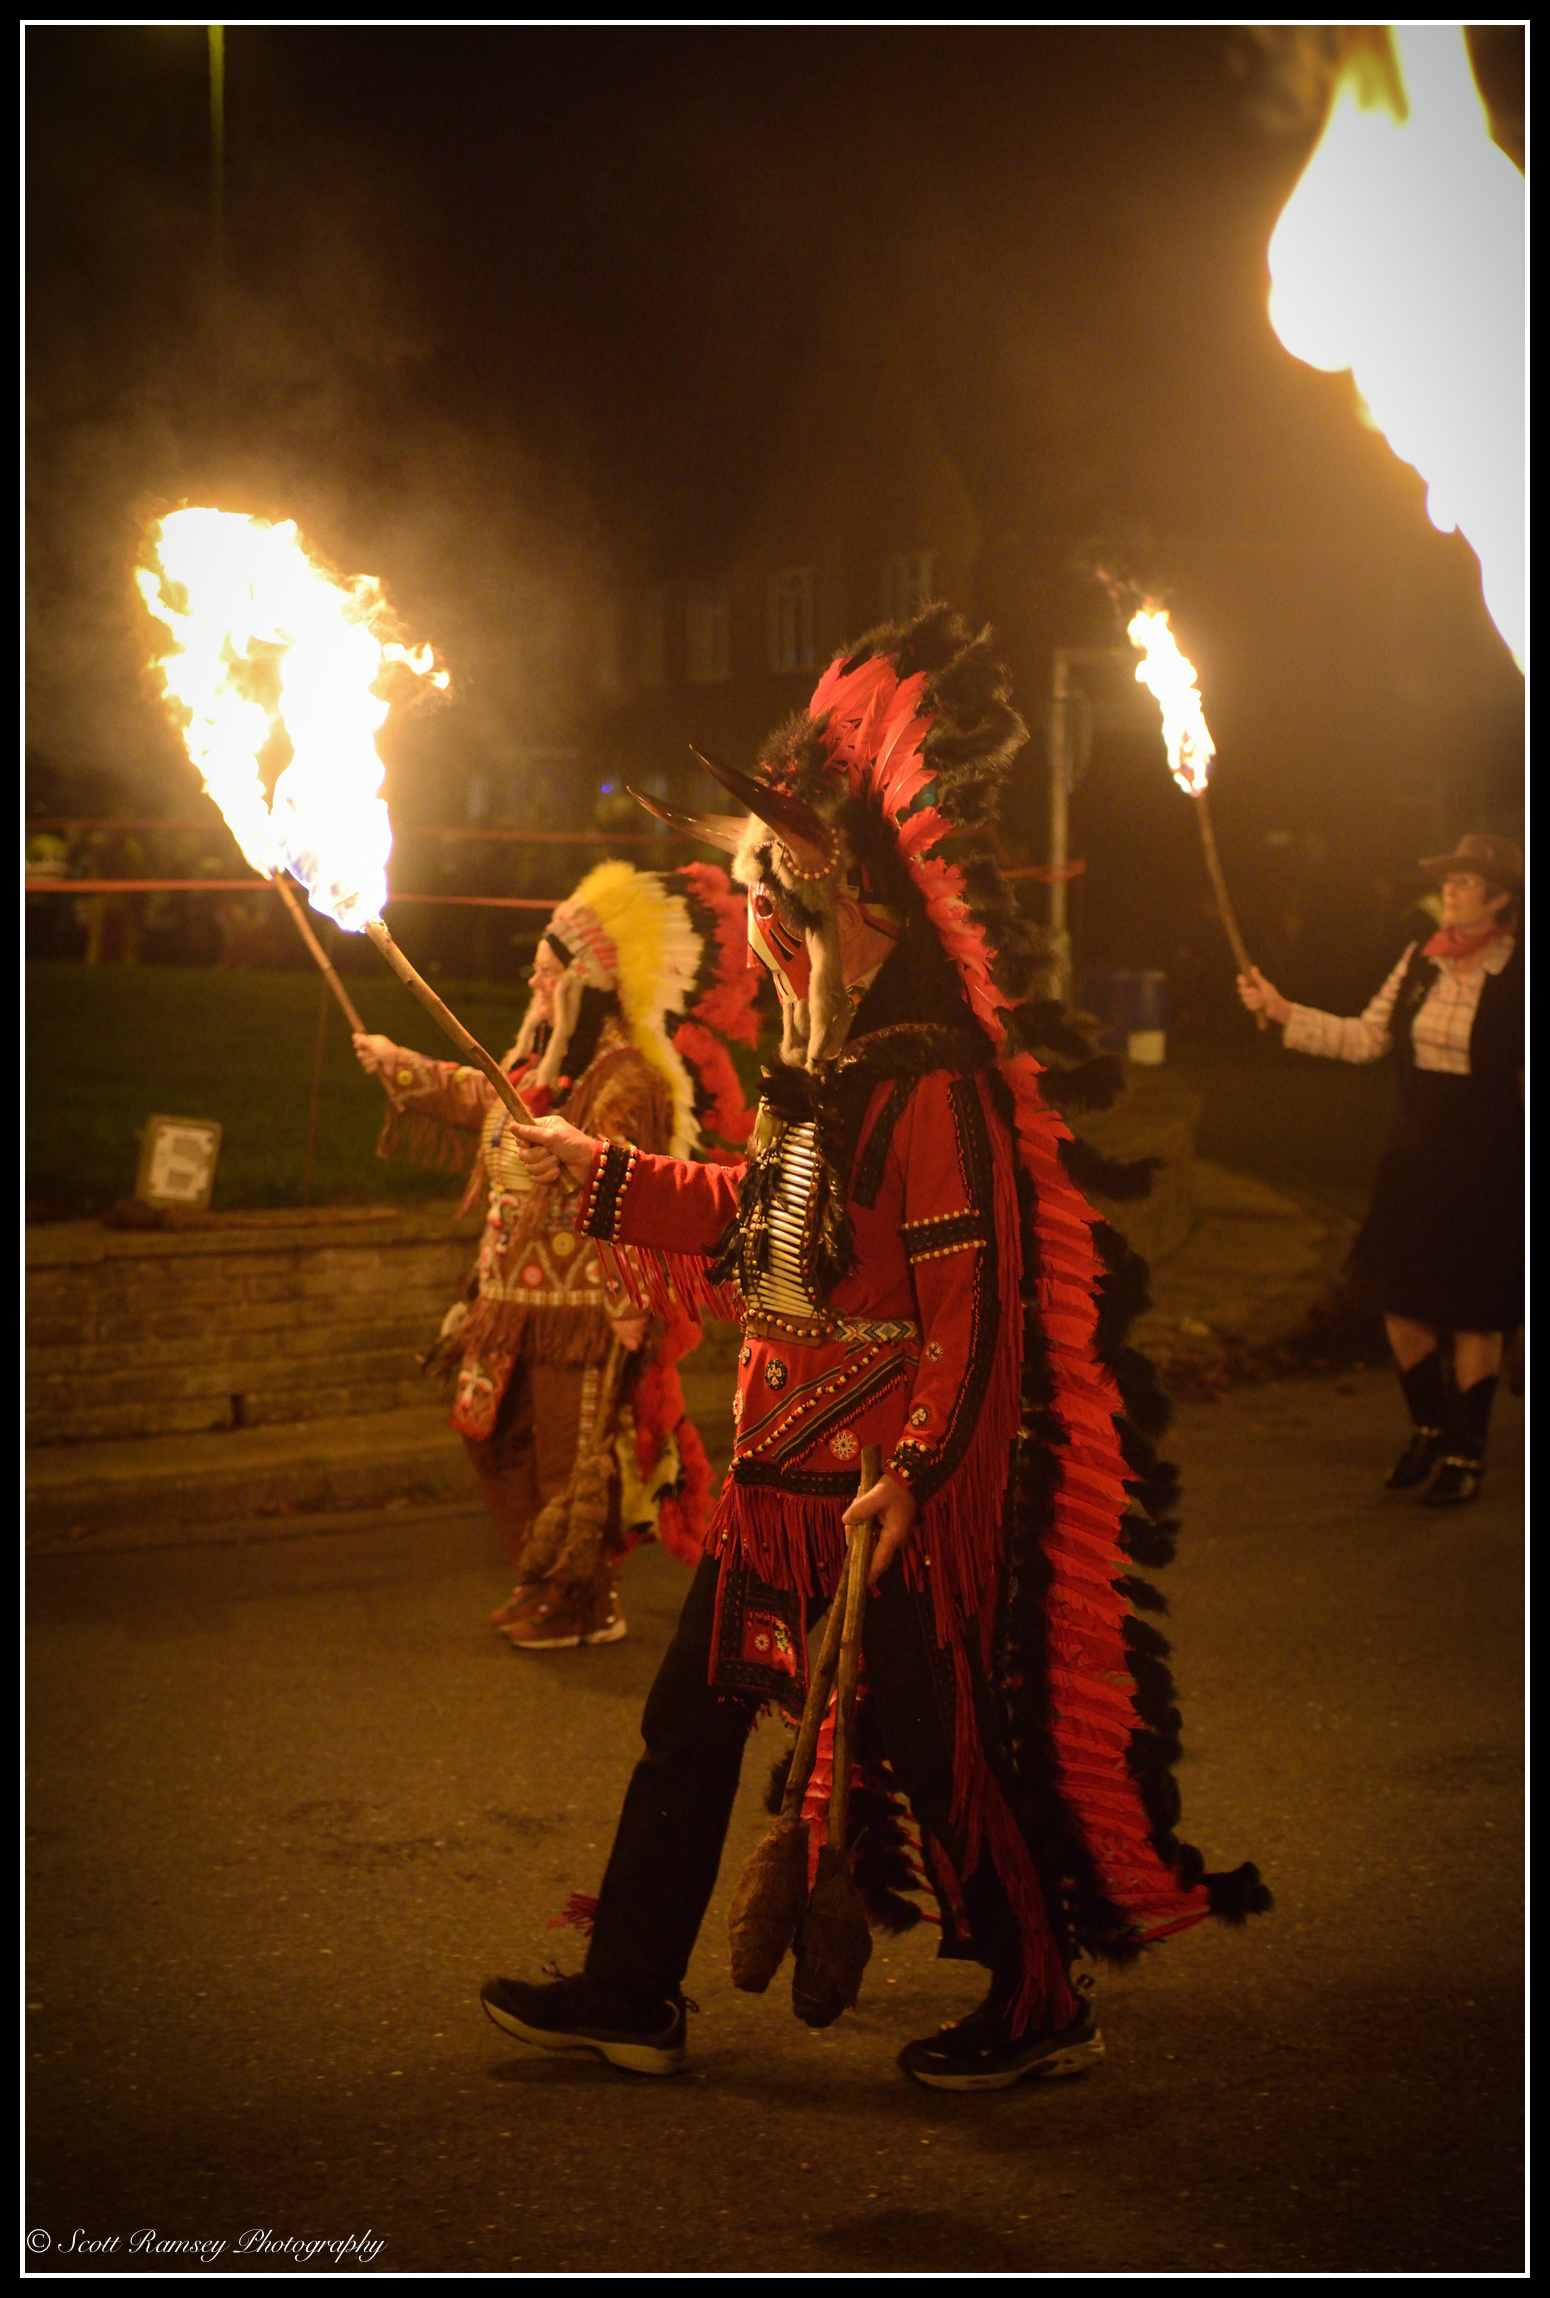 Members of the Littlehampton Bonfire Society dressed in North American Indian costumes hold flaming torches as they lead the procession through the streets.